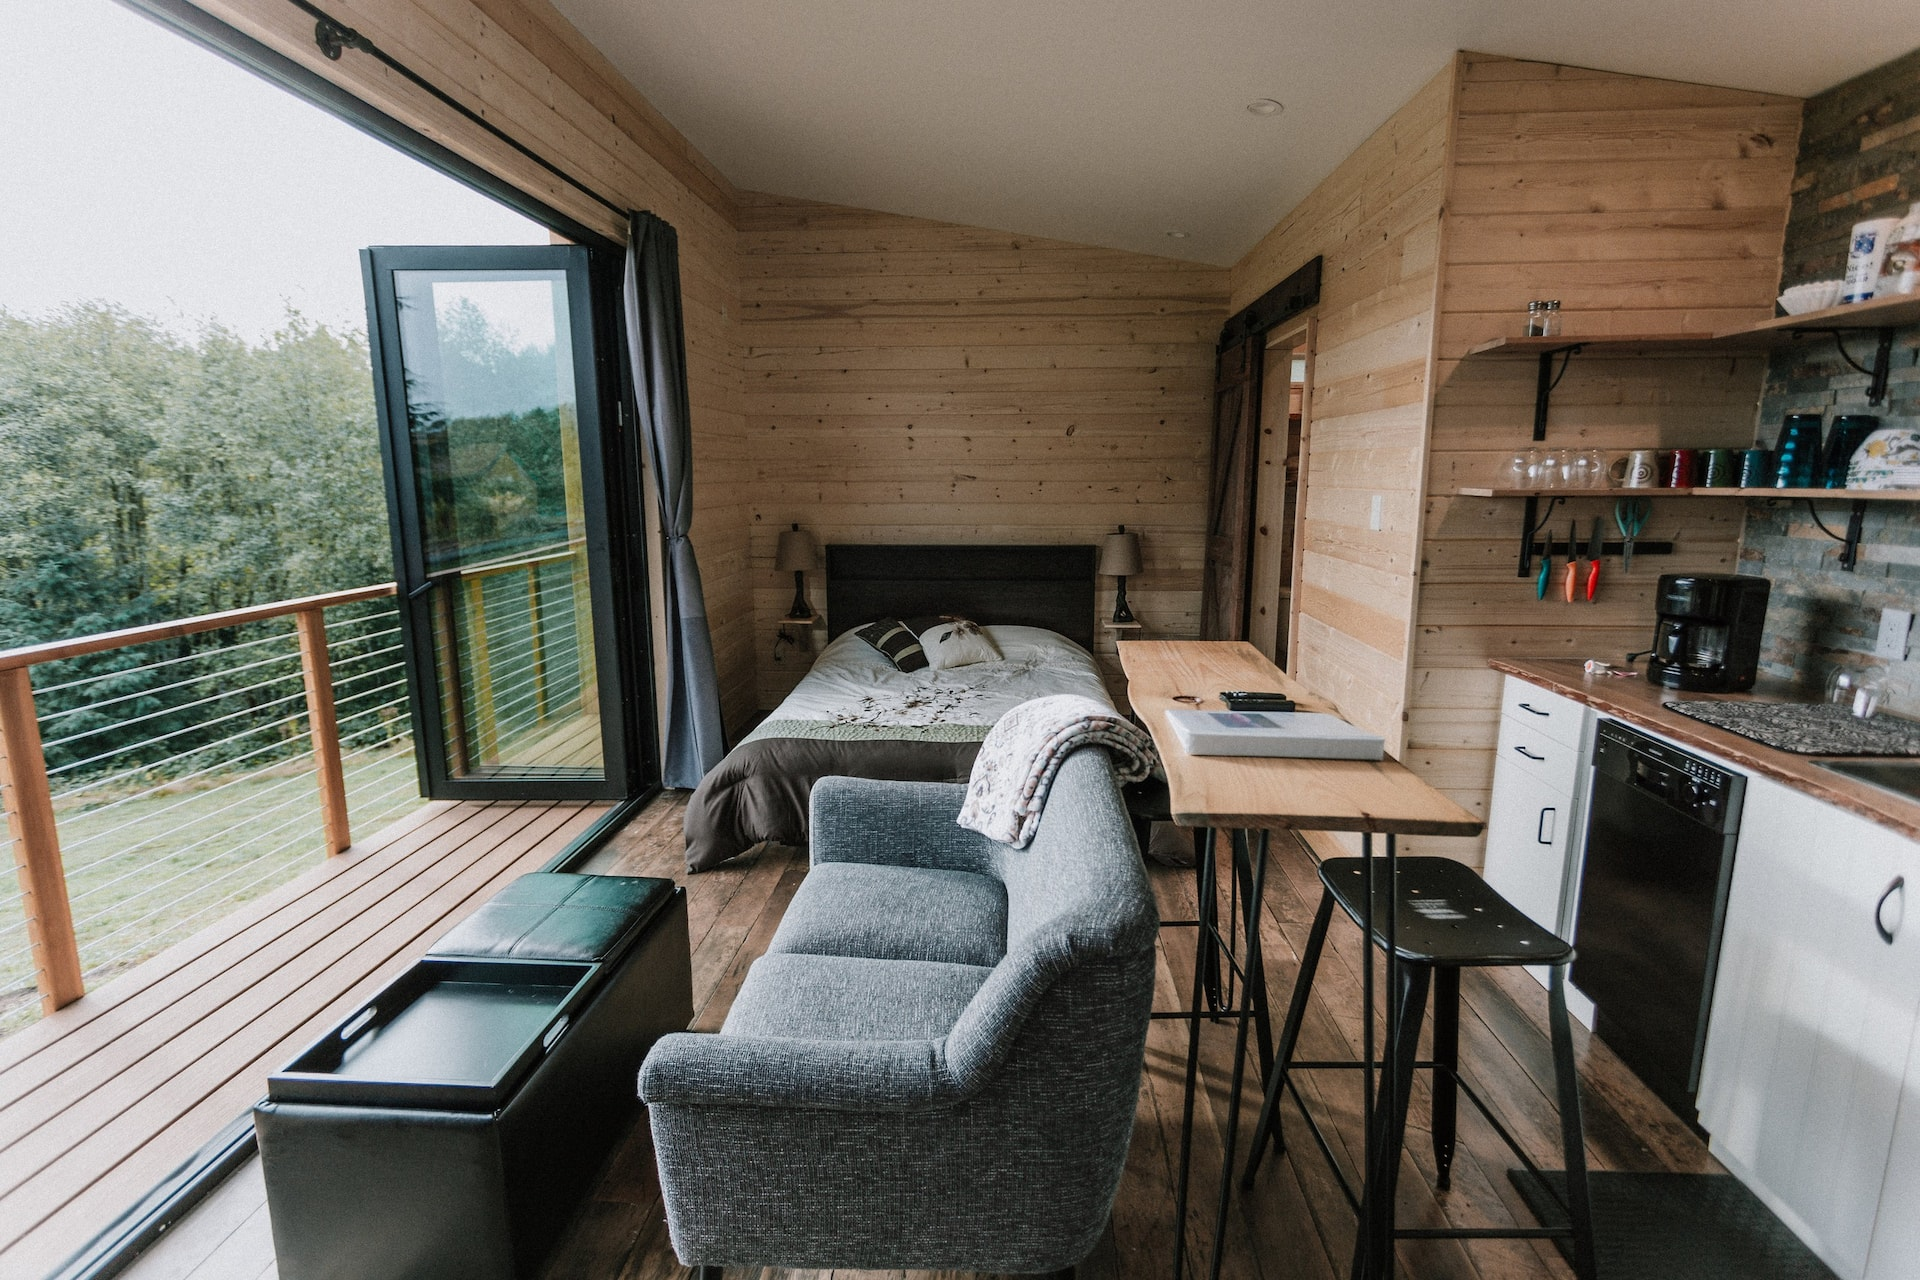 The Mt Hood View Tiny House Airbnb in Oregon